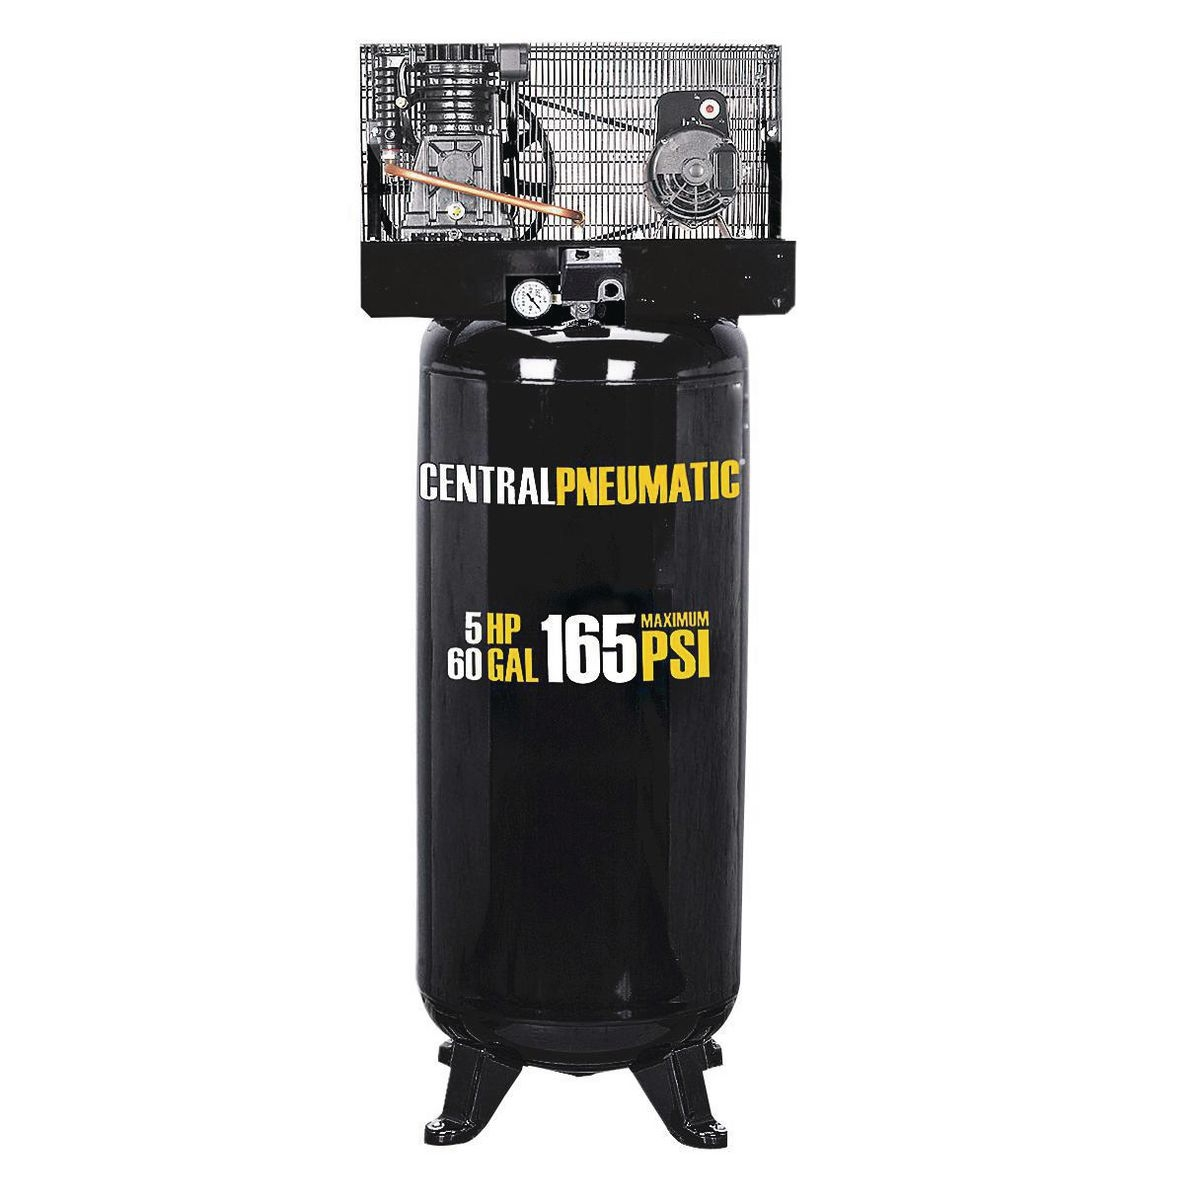 hight resolution of 60 gallon air compressor 2 stage 5 hp 165 psi